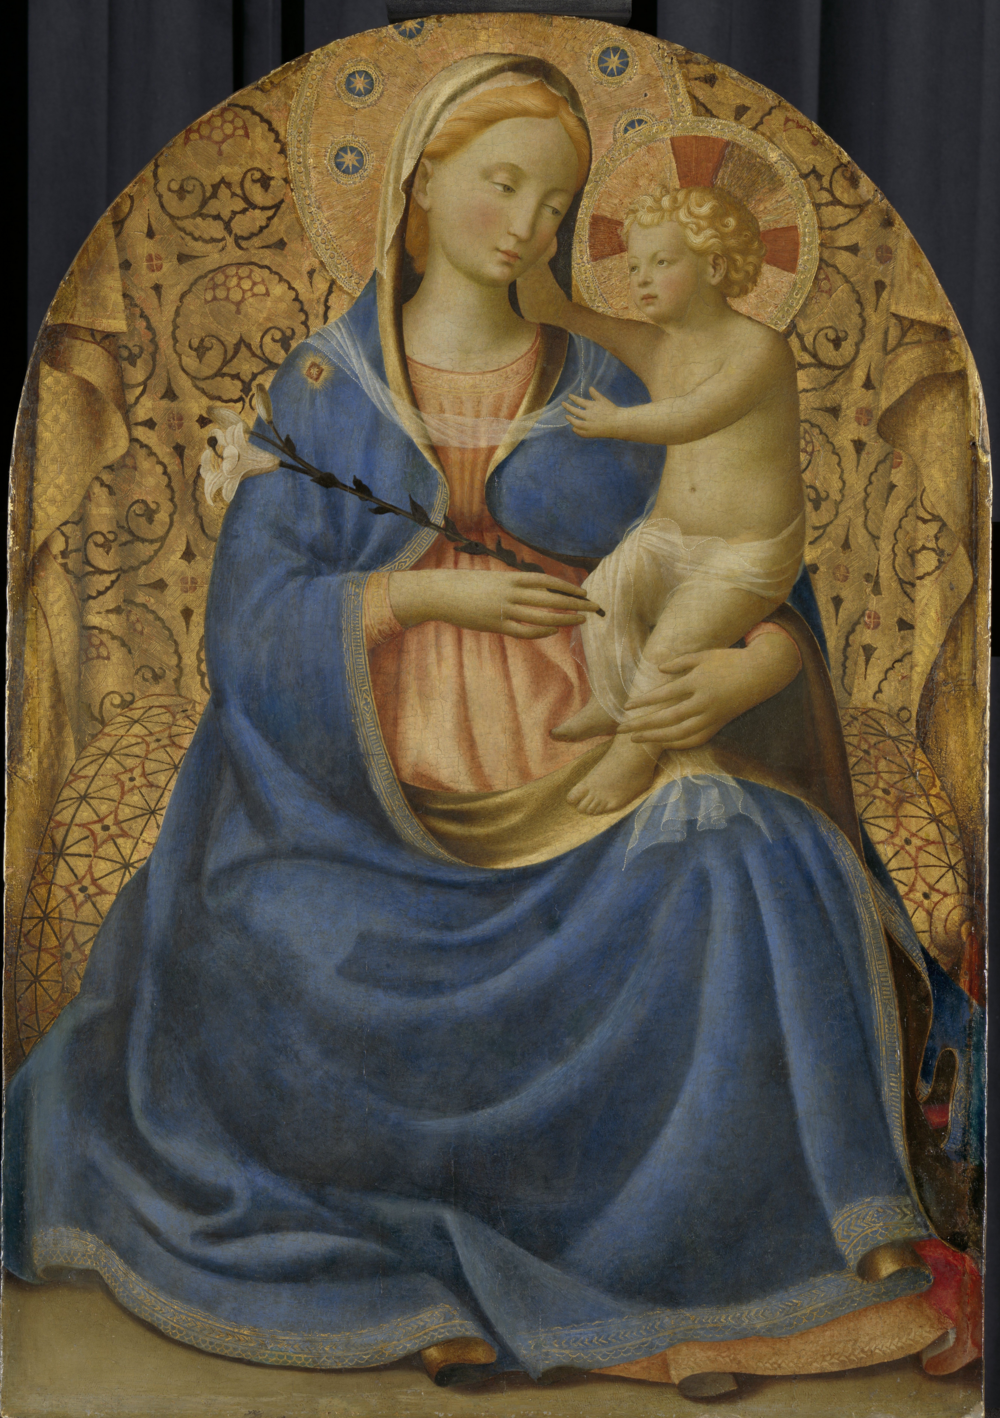 The One Who does the work of Christ must always cling to him. - -Blessed Fra Angelico